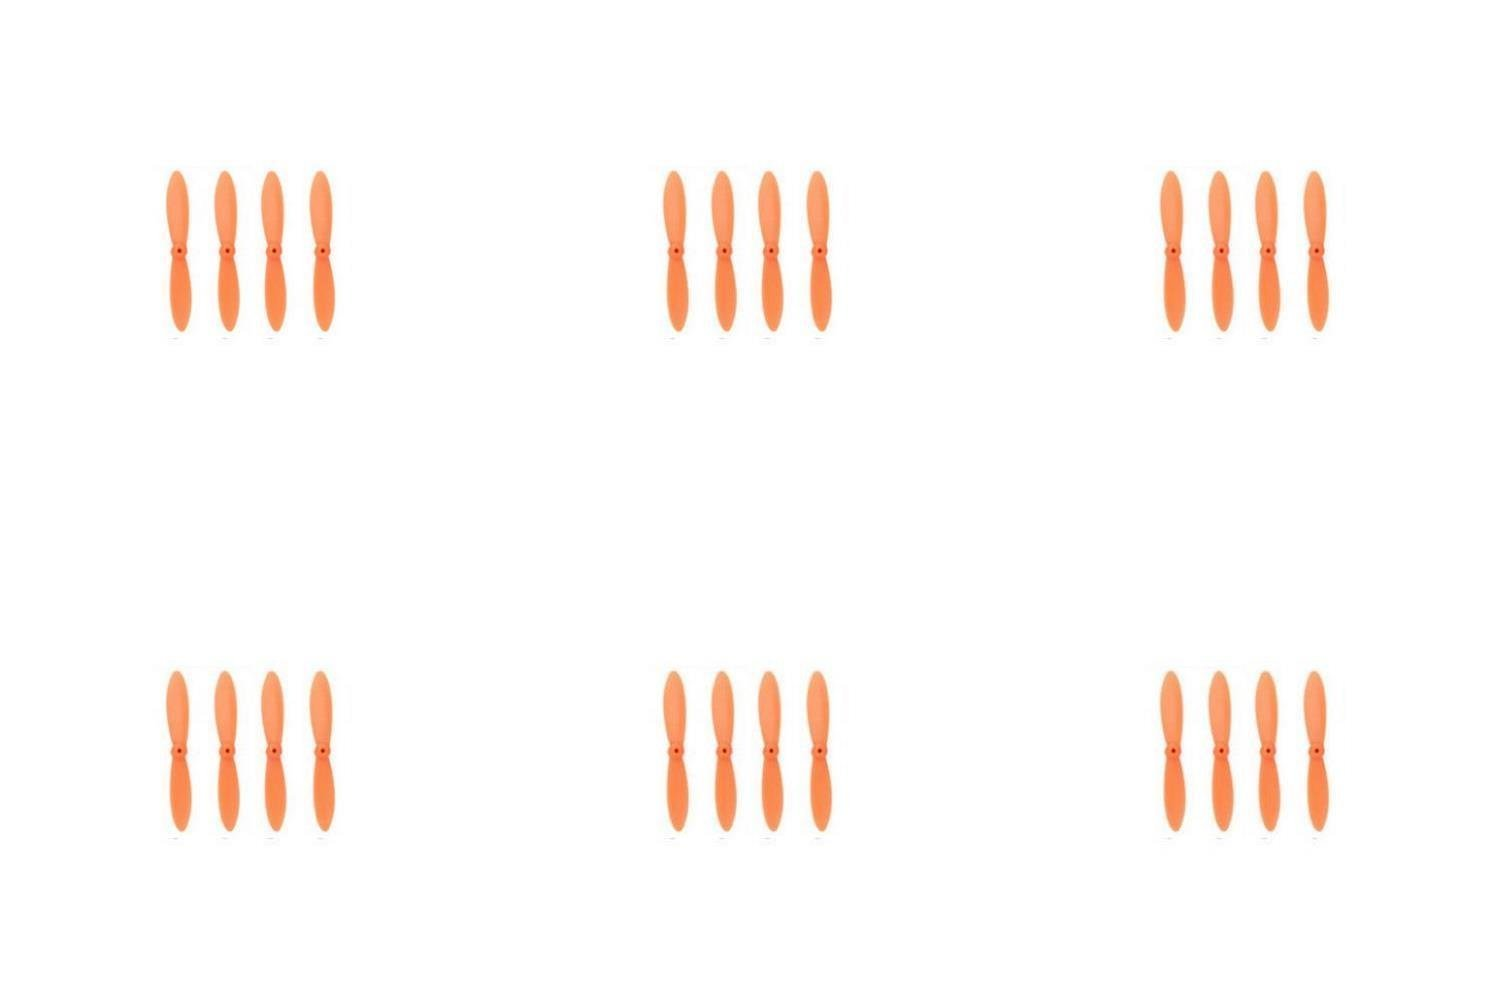 popular 6 x Quantity of WLtoys V292 All Orange Nano Quadcopter Quadcopter Quadcopter Propeller blade Set 32mm Propellers Blades Props Quad Drone parts - FAST FROM Orlando, Florida USA  100% a estrenar con calidad original.